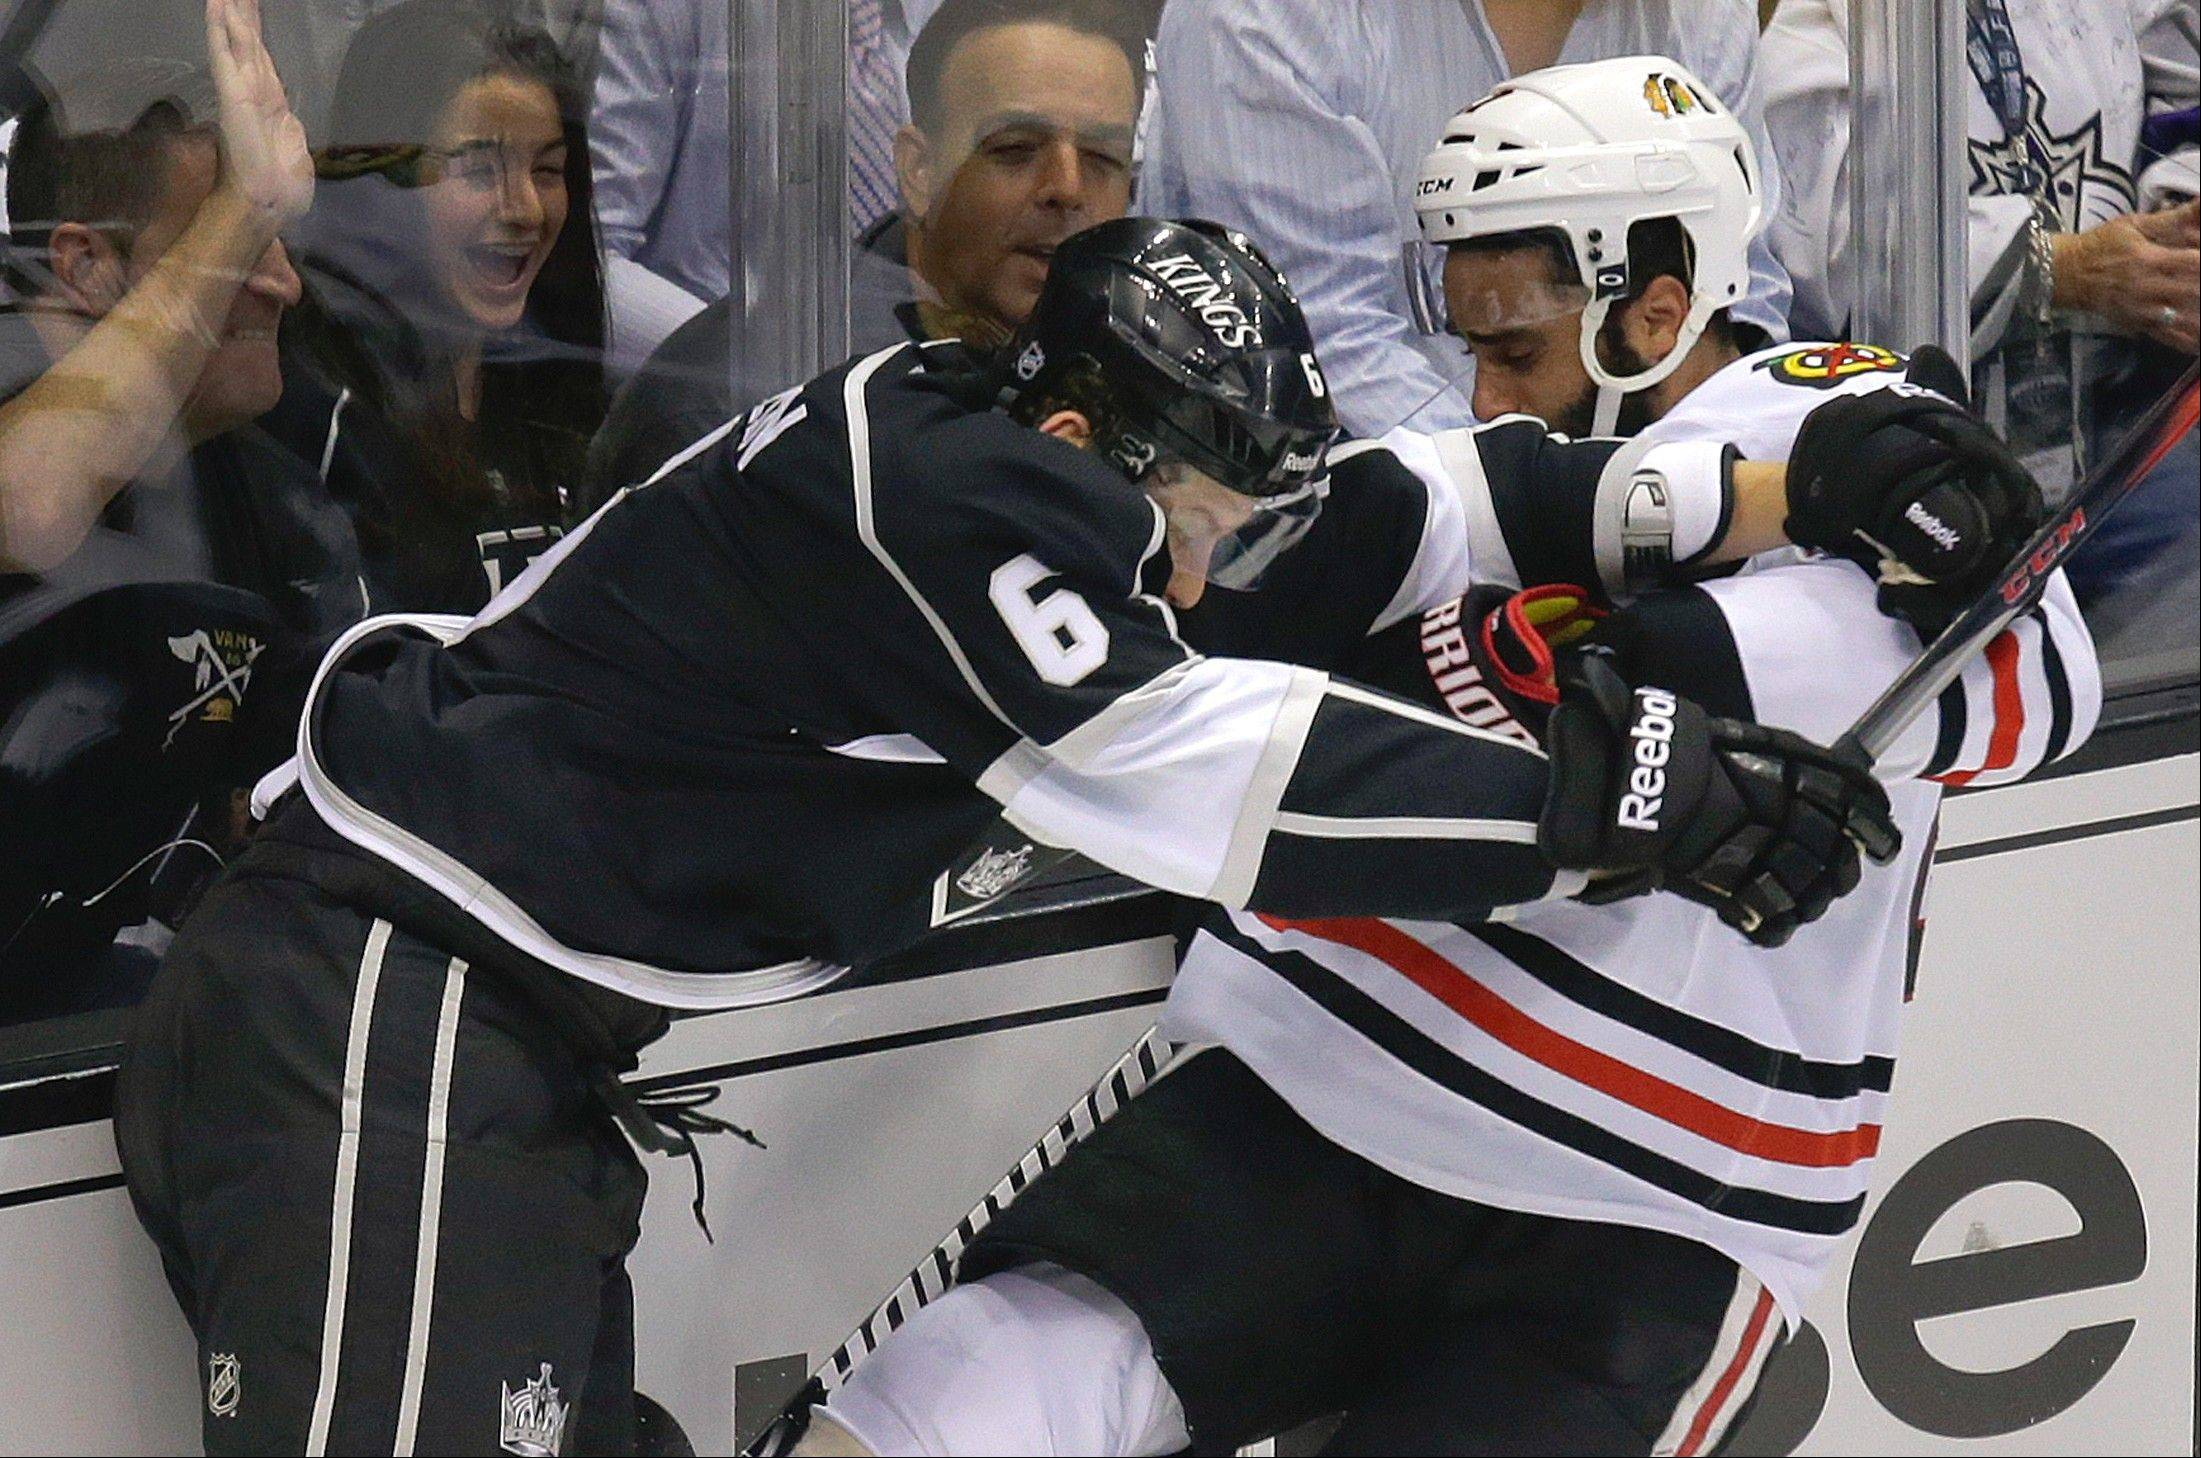 Blackhawks suffer loss, take a beating